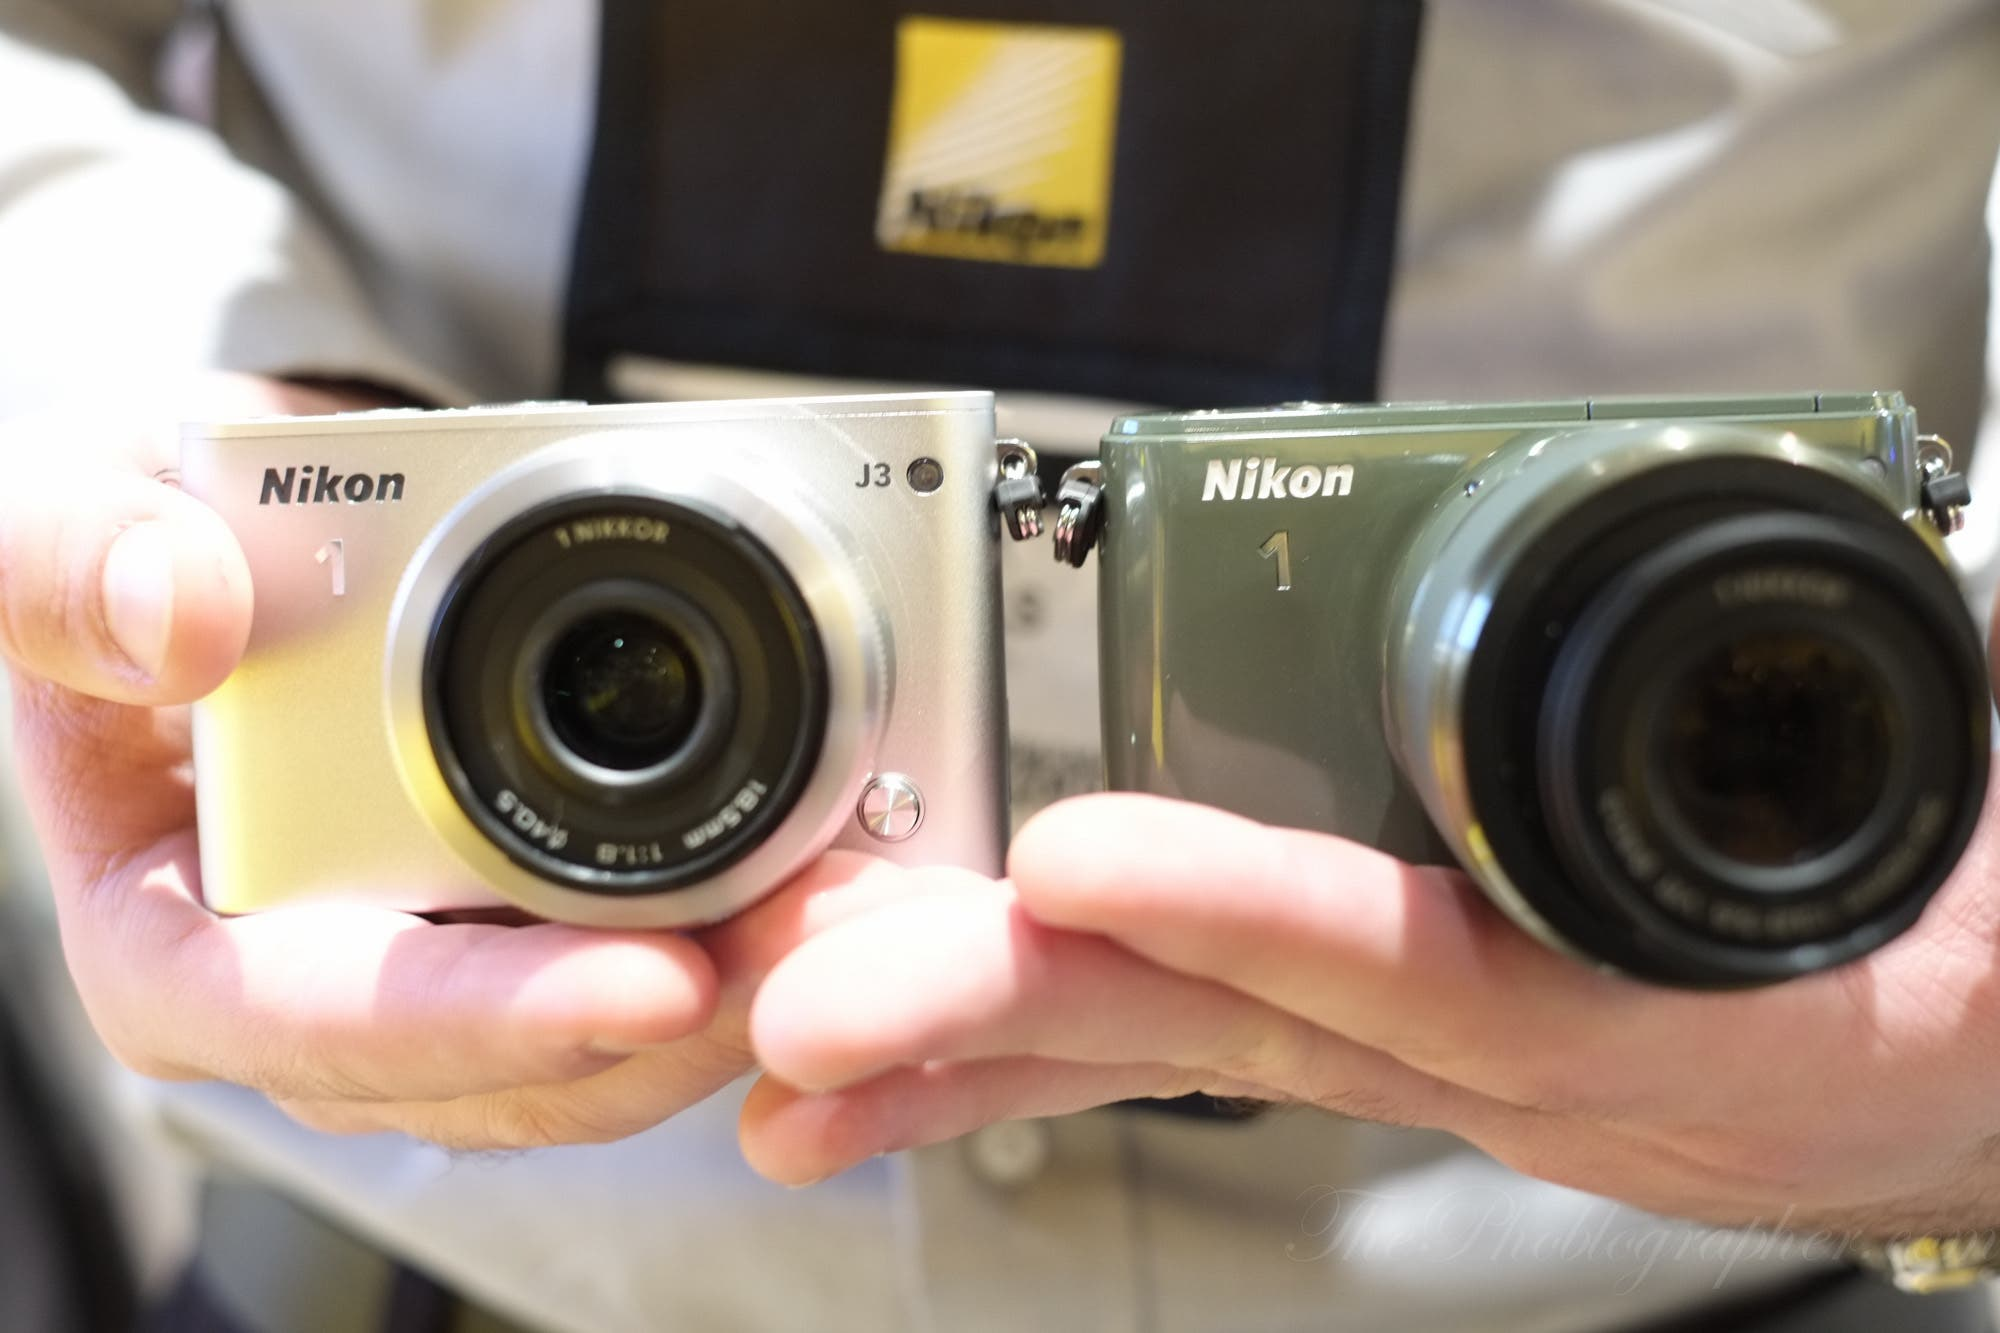 First Impressions: Nikon J3 and S1